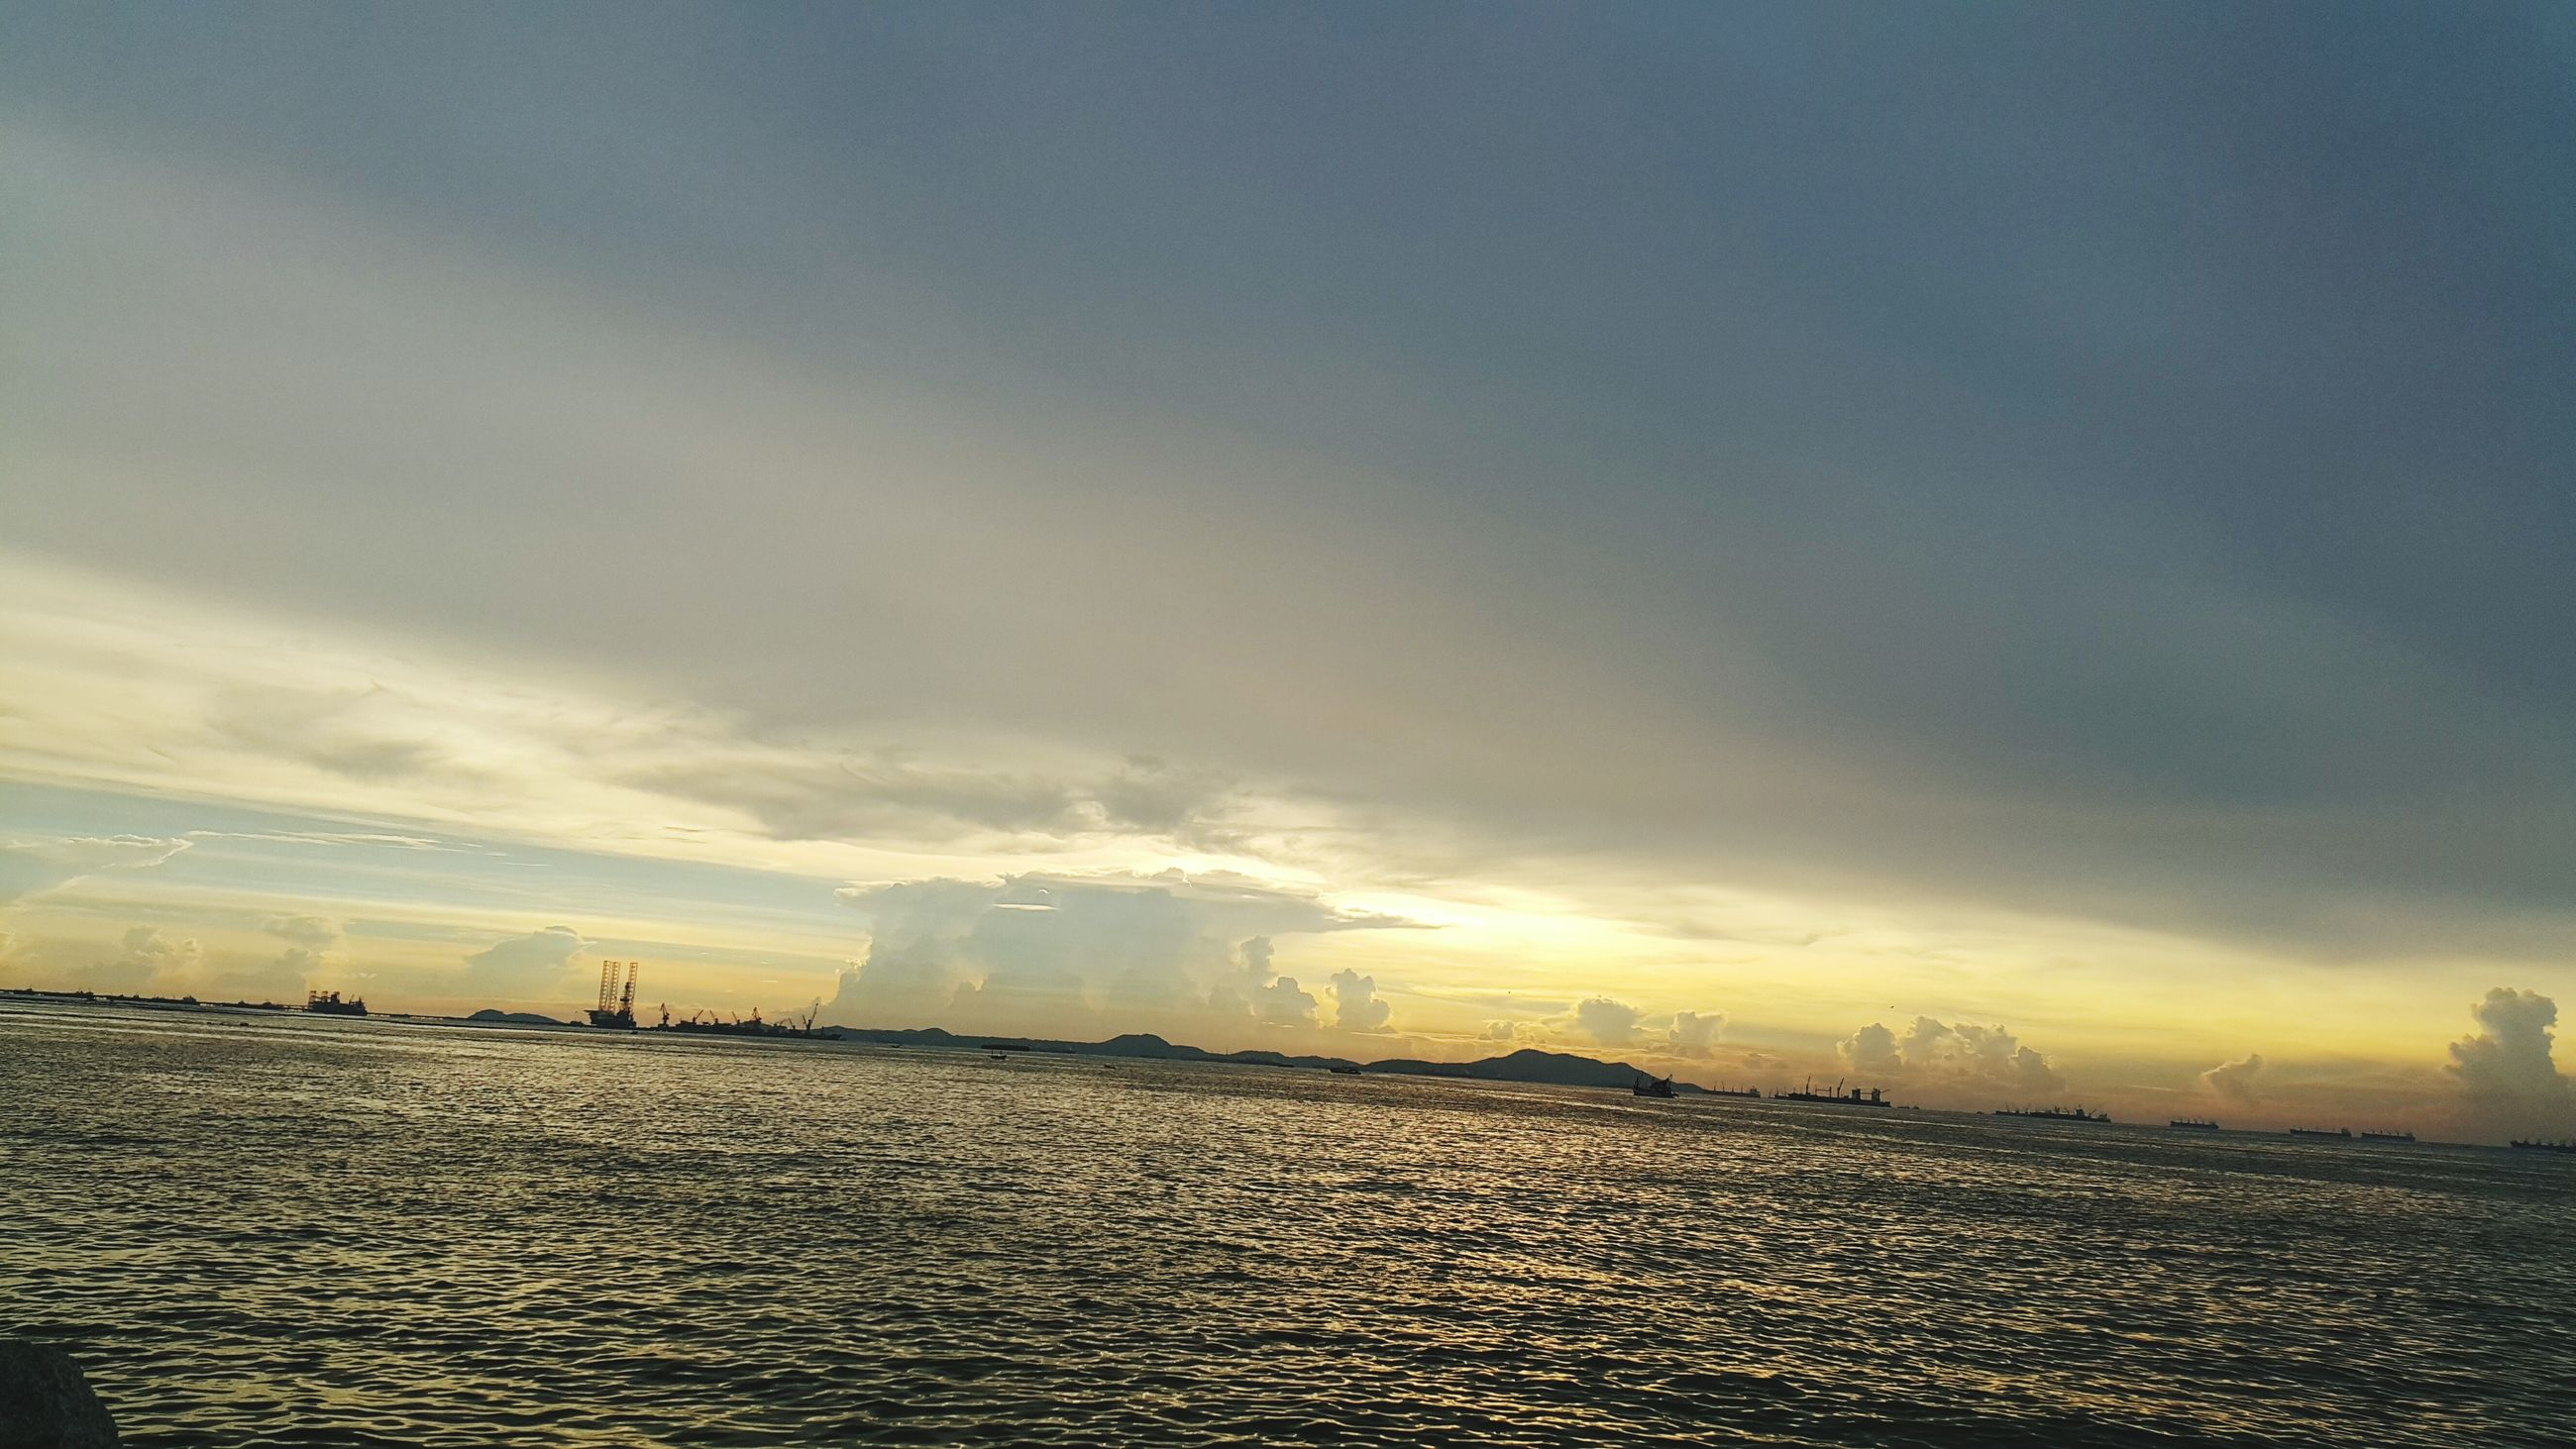 beach, sea, sky, water, sand, scenics, shore, tranquil scene, sunset, tranquility, beauty in nature, cloud - sky, horizon over water, nature, idyllic, cloud, outdoors, cloudy, coastline, sunlight